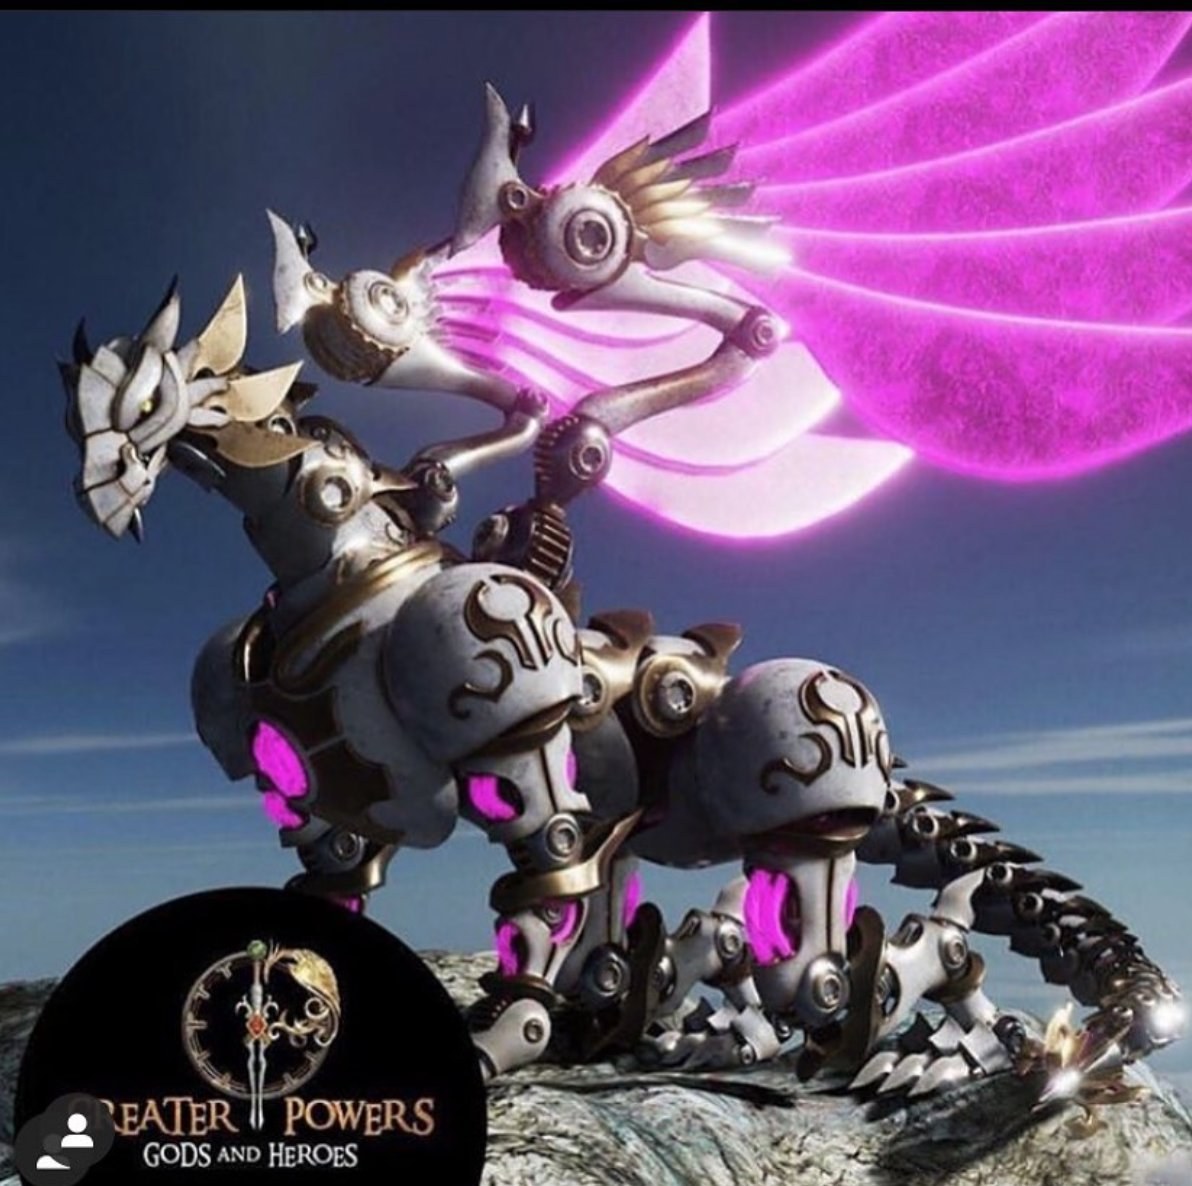 Here we have a Clockwork Dragon. At nearly 200 meters in length, this flying behemoth is the Scholarium's most devastating war machine. #GreaterPowers #IndieGame #Twitch #Steampunk